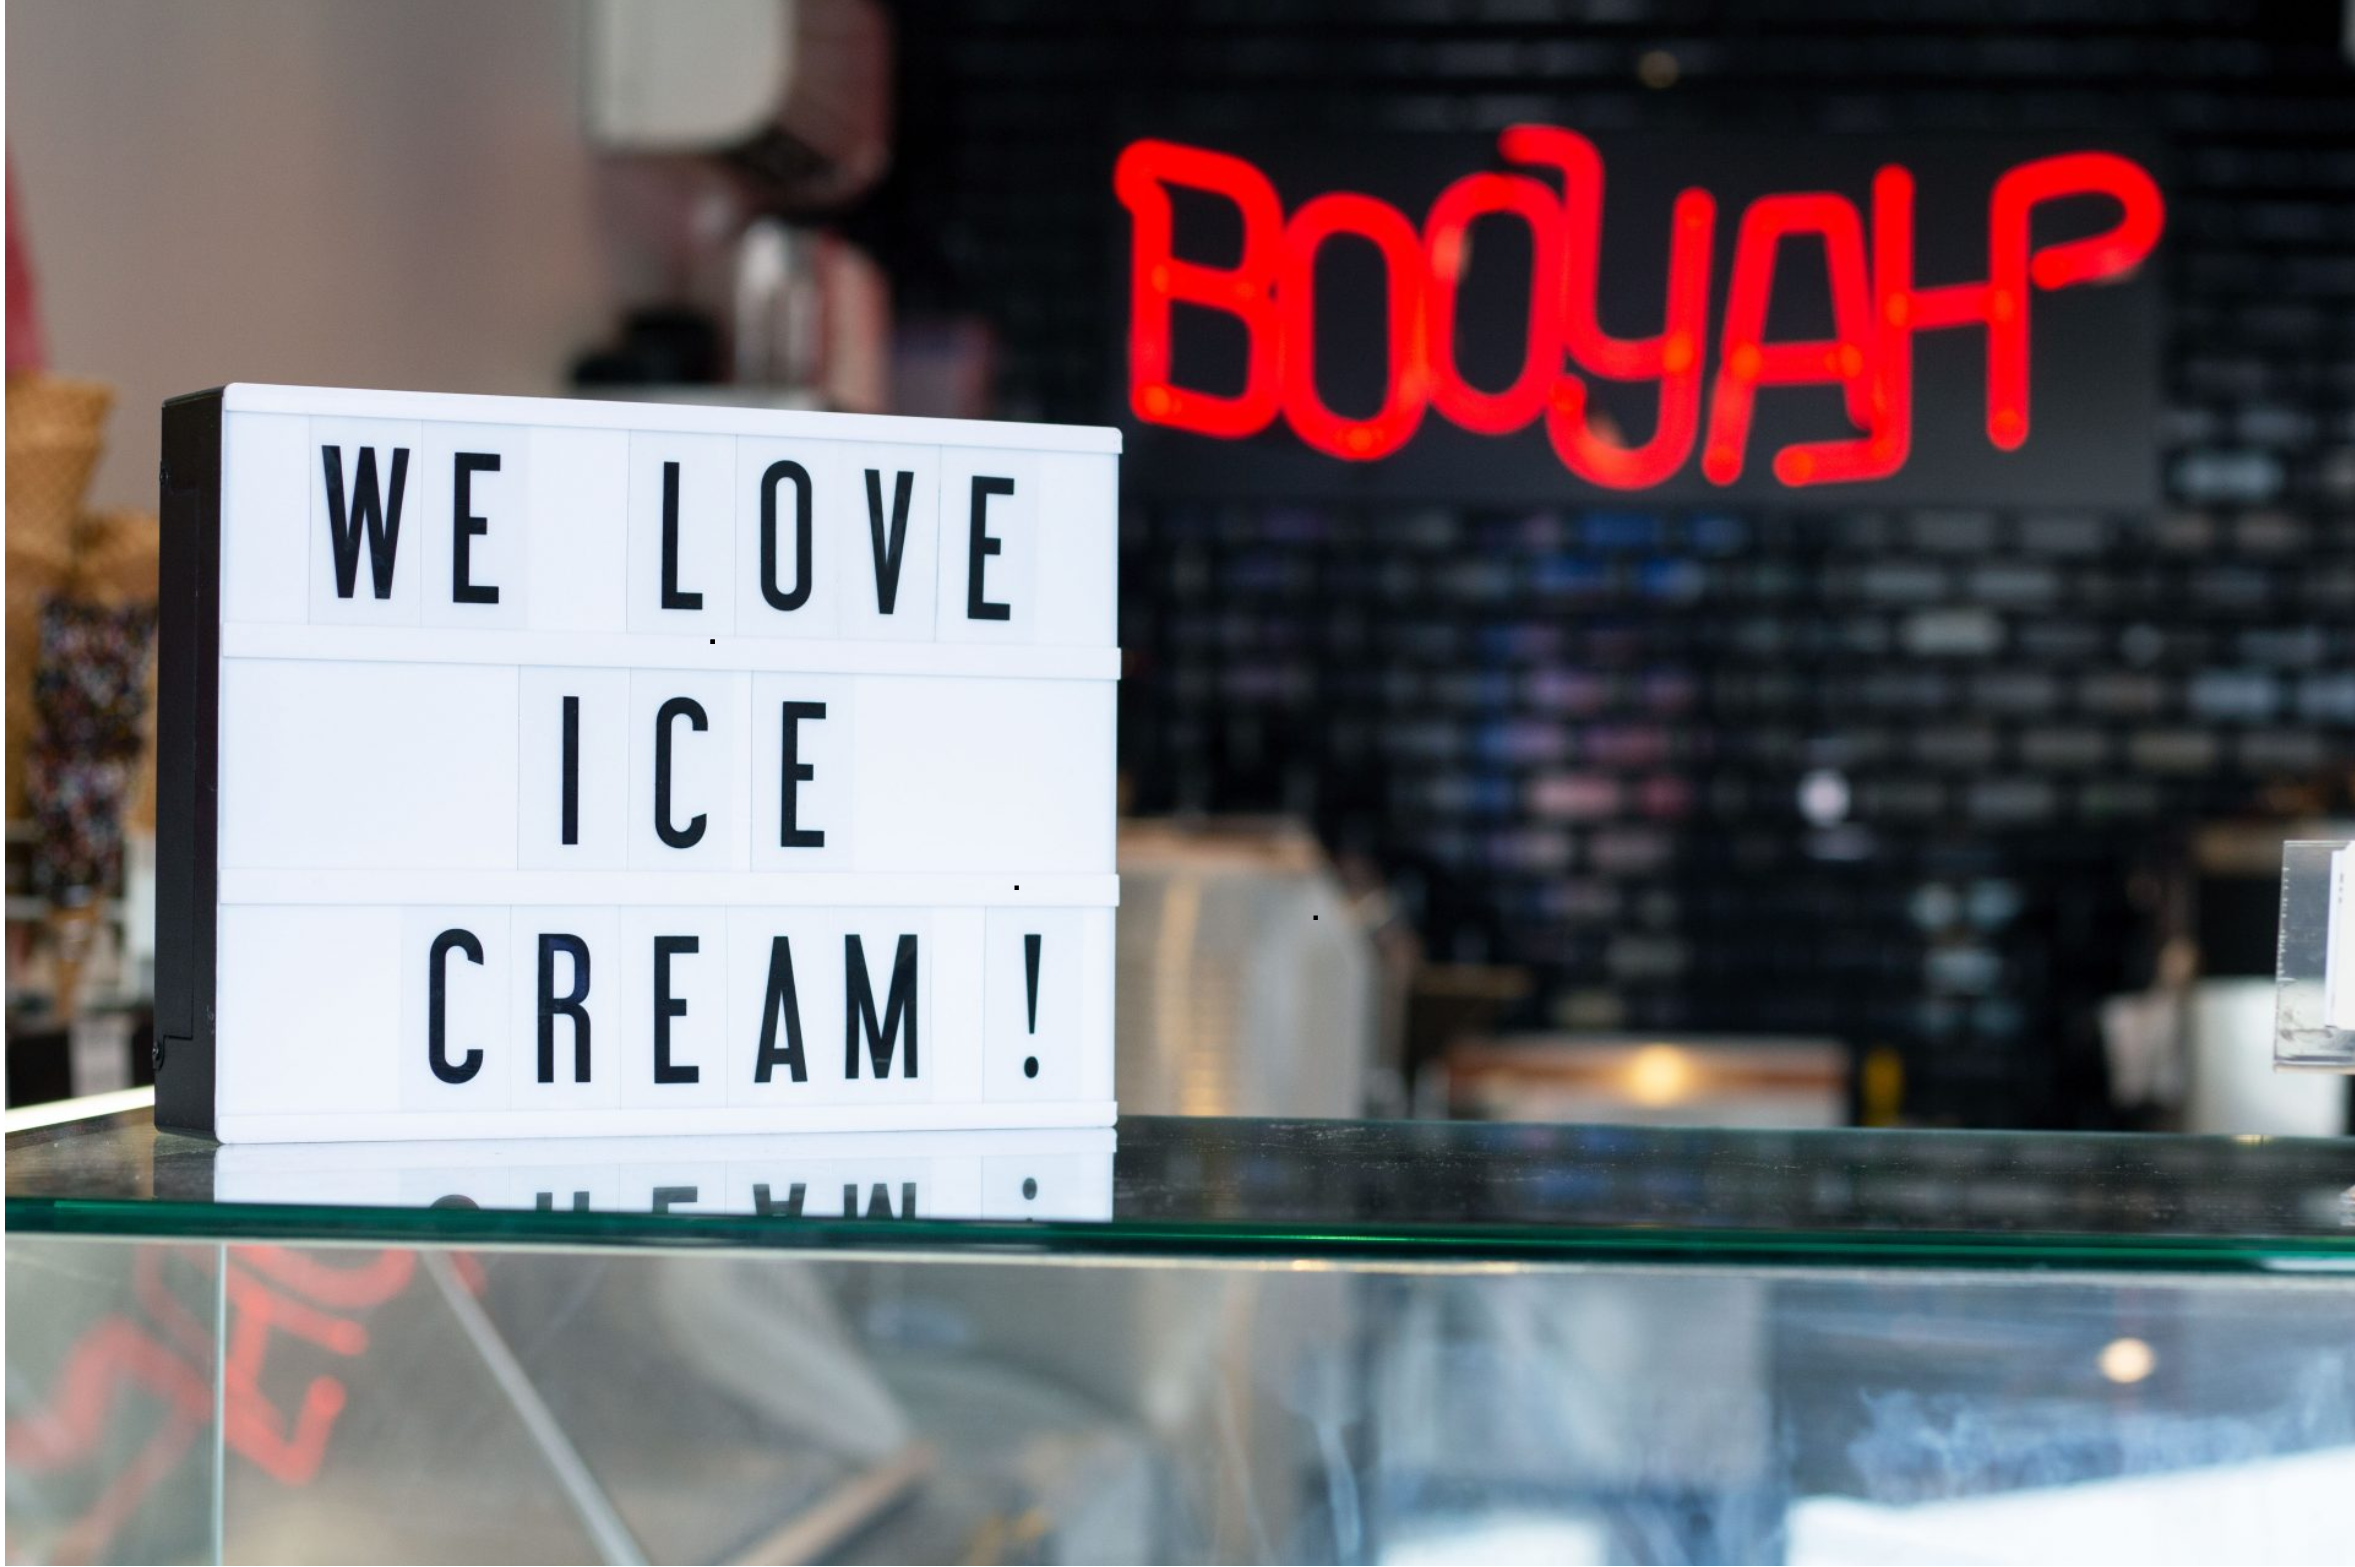 Booyah: A One of a Kind Ice Cream Experience - With our minds full of joy after hearing Booyah's story, and our stomachs full of ice cream, we left Booyah pretty happy. Blair is right—everyone is in a good mood when ice cream is involved.